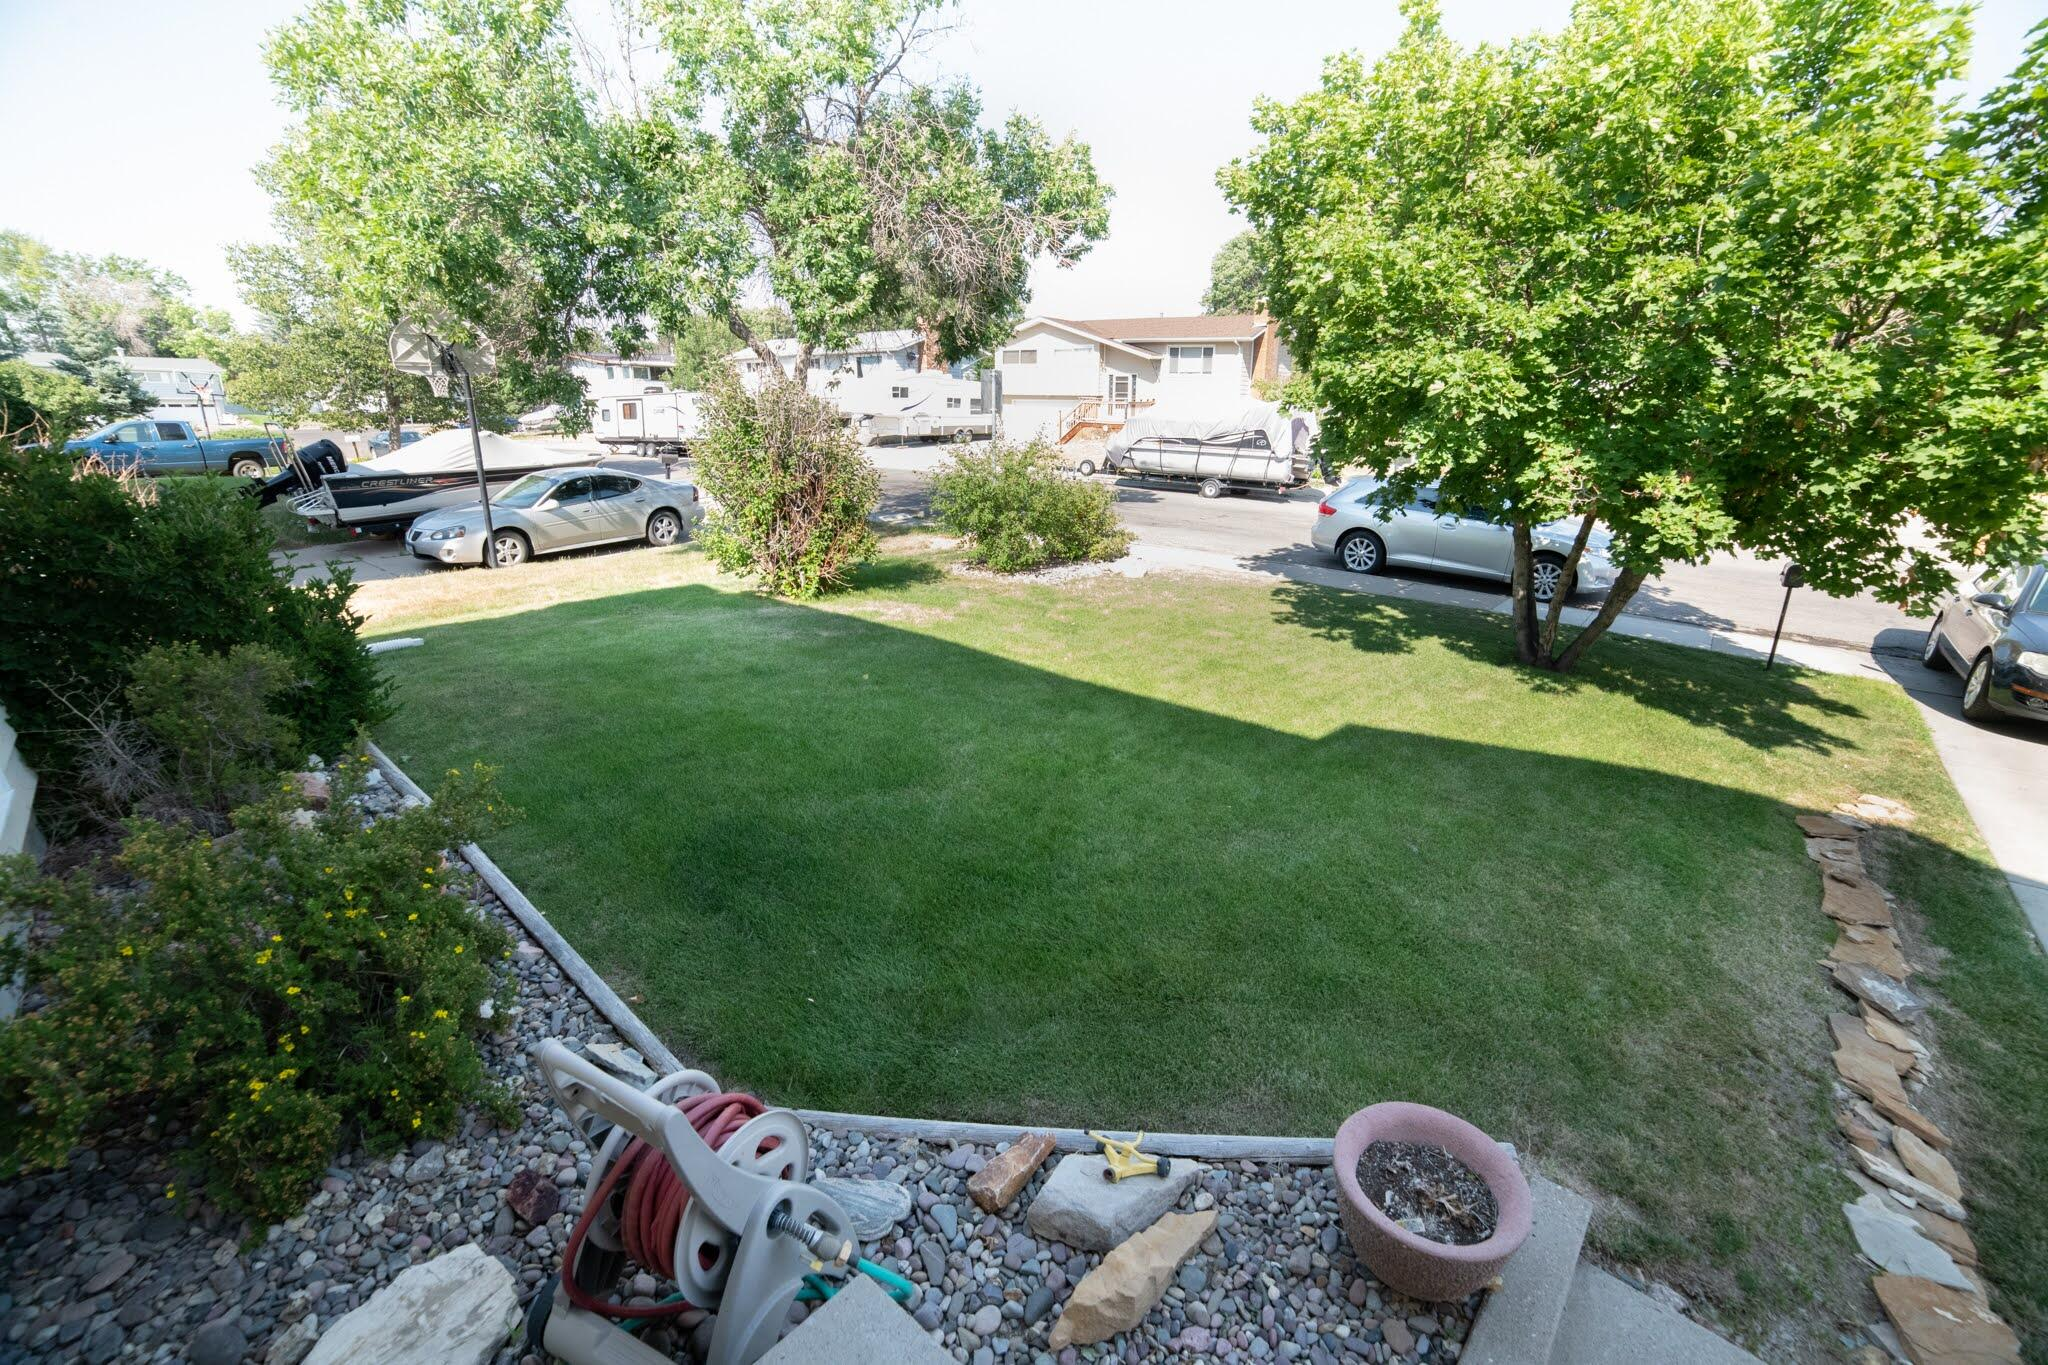 Great find in Fox Farm for under 250,000! Come check out this well taken care of Delmar home which boasts great curb appeal from the front yard and continues into the back yard. The backyard comes complete with deck and hot tub. This home is move in ready as but could also be updated to add value. Listed by Joseph Lee